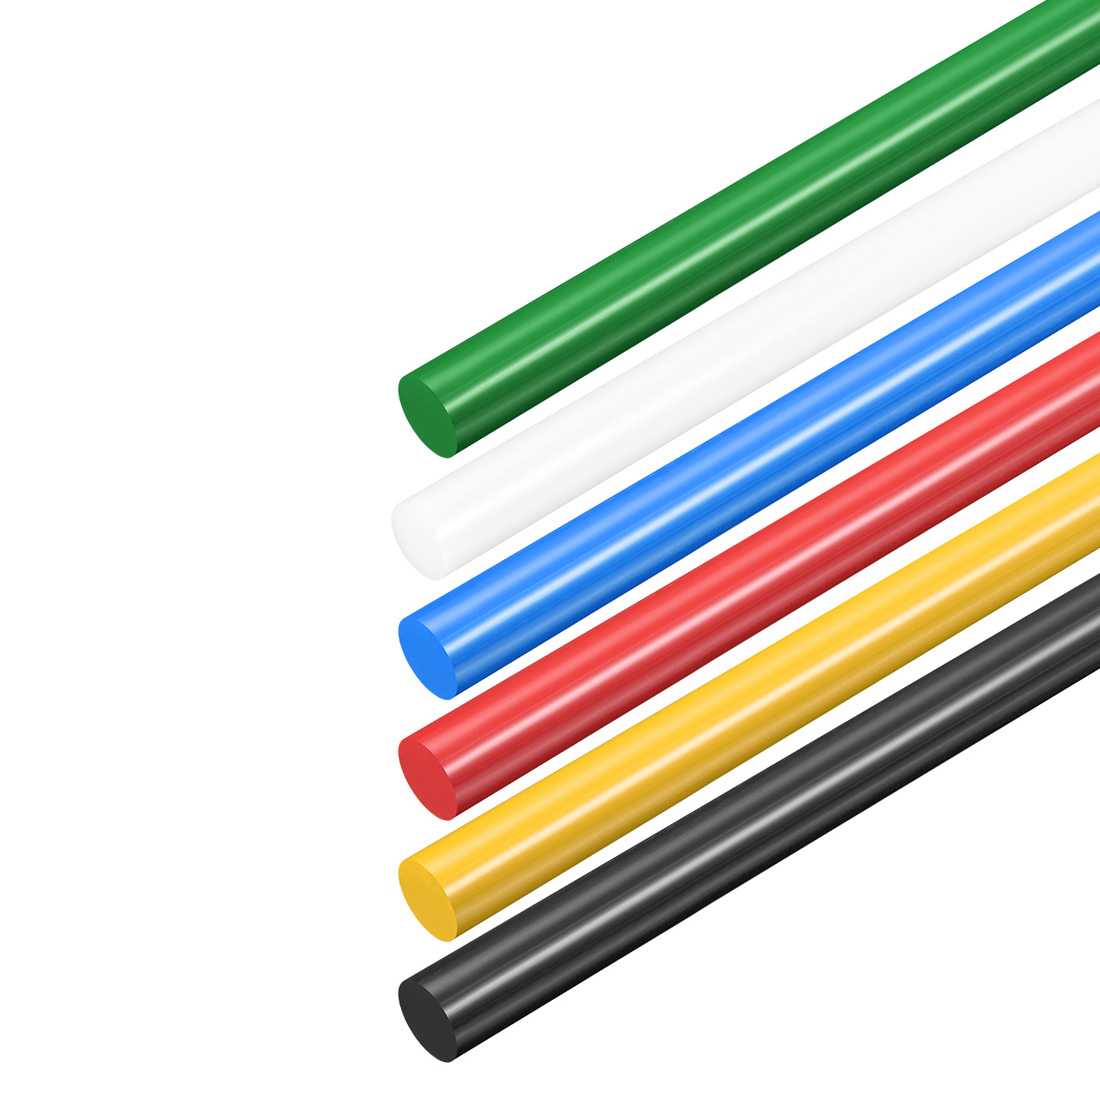 Uxcell 1Pcs 2Pcs 3Pcs Plastic Round Rod Polyoxymethylene Rods 6mm Dia 50cm Length Engineering Plastic Round Bar Tough Stable